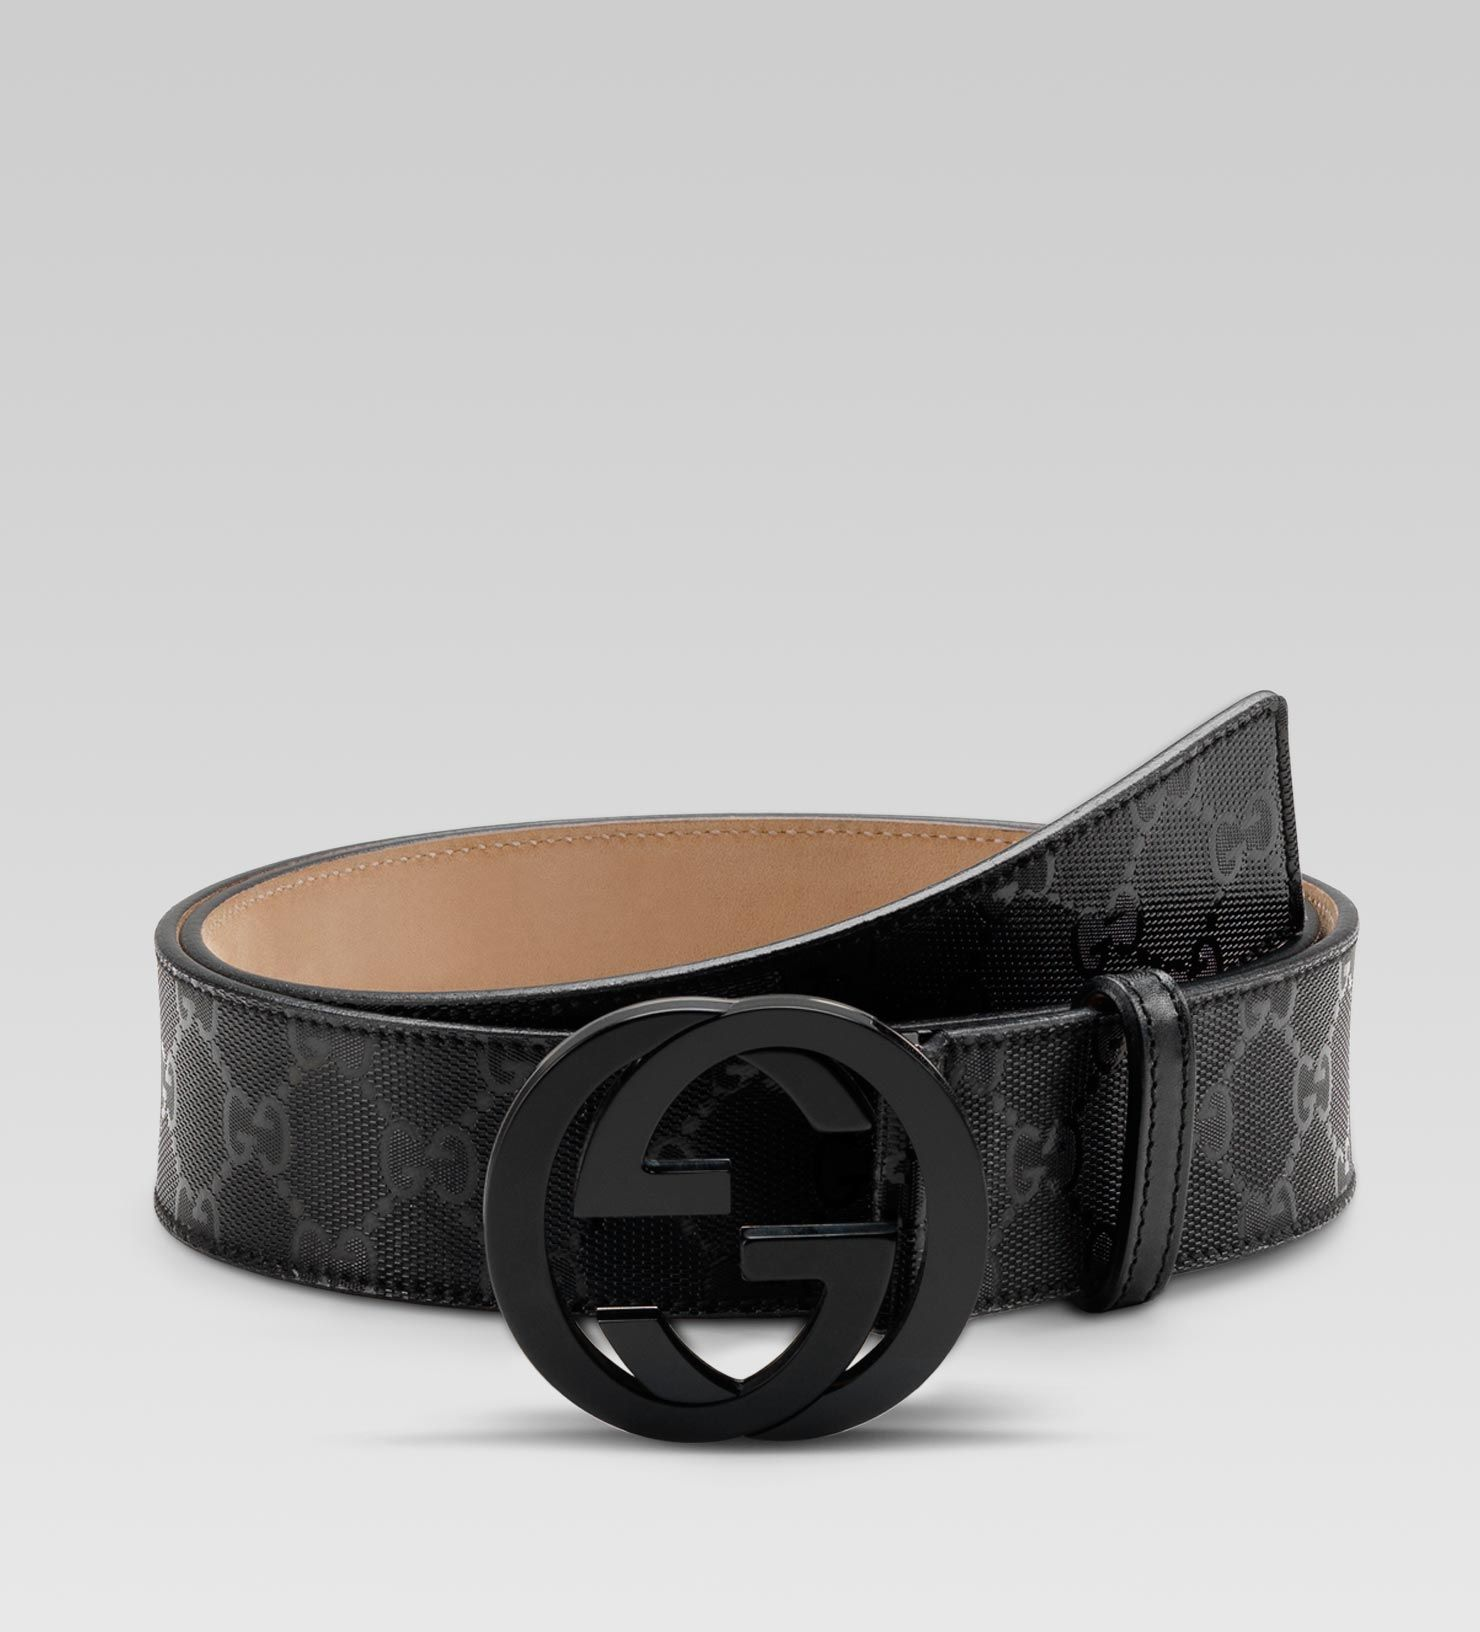 63e01ec50f4 Gucci interlocking g belt black imprime